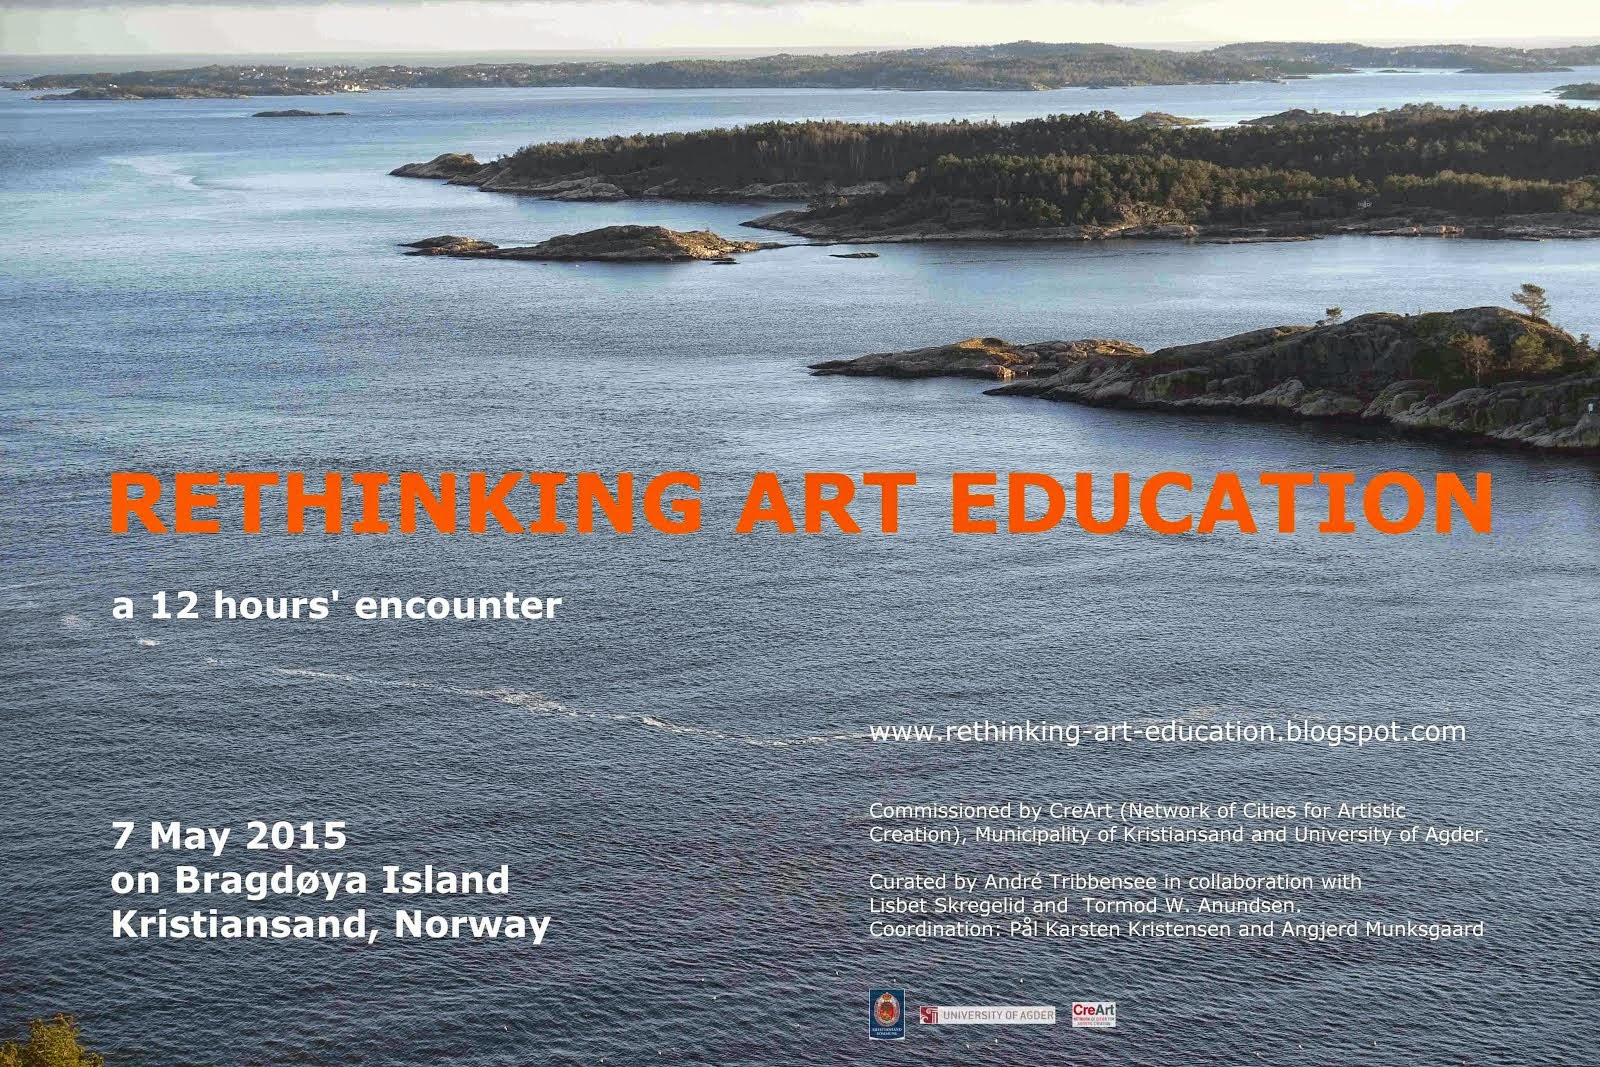 next project: RETHINKING ART EDUCATION, 7 May 2015